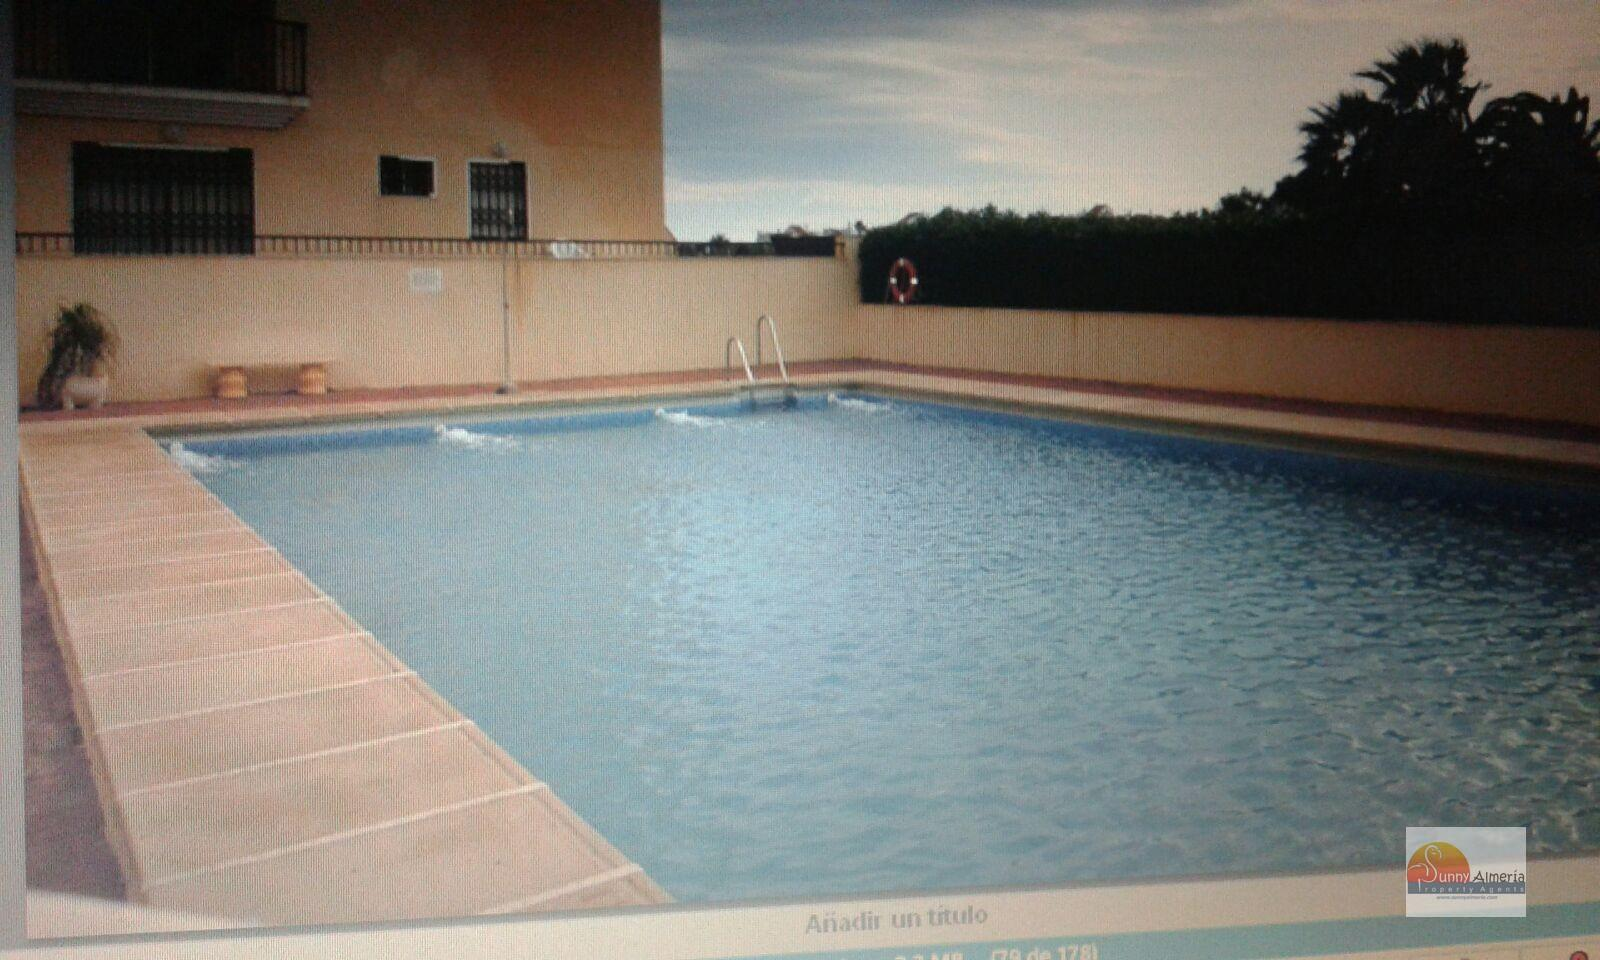 Apartment for rent in calle aviacion 0 (Roquetas de Mar), 550 €/month